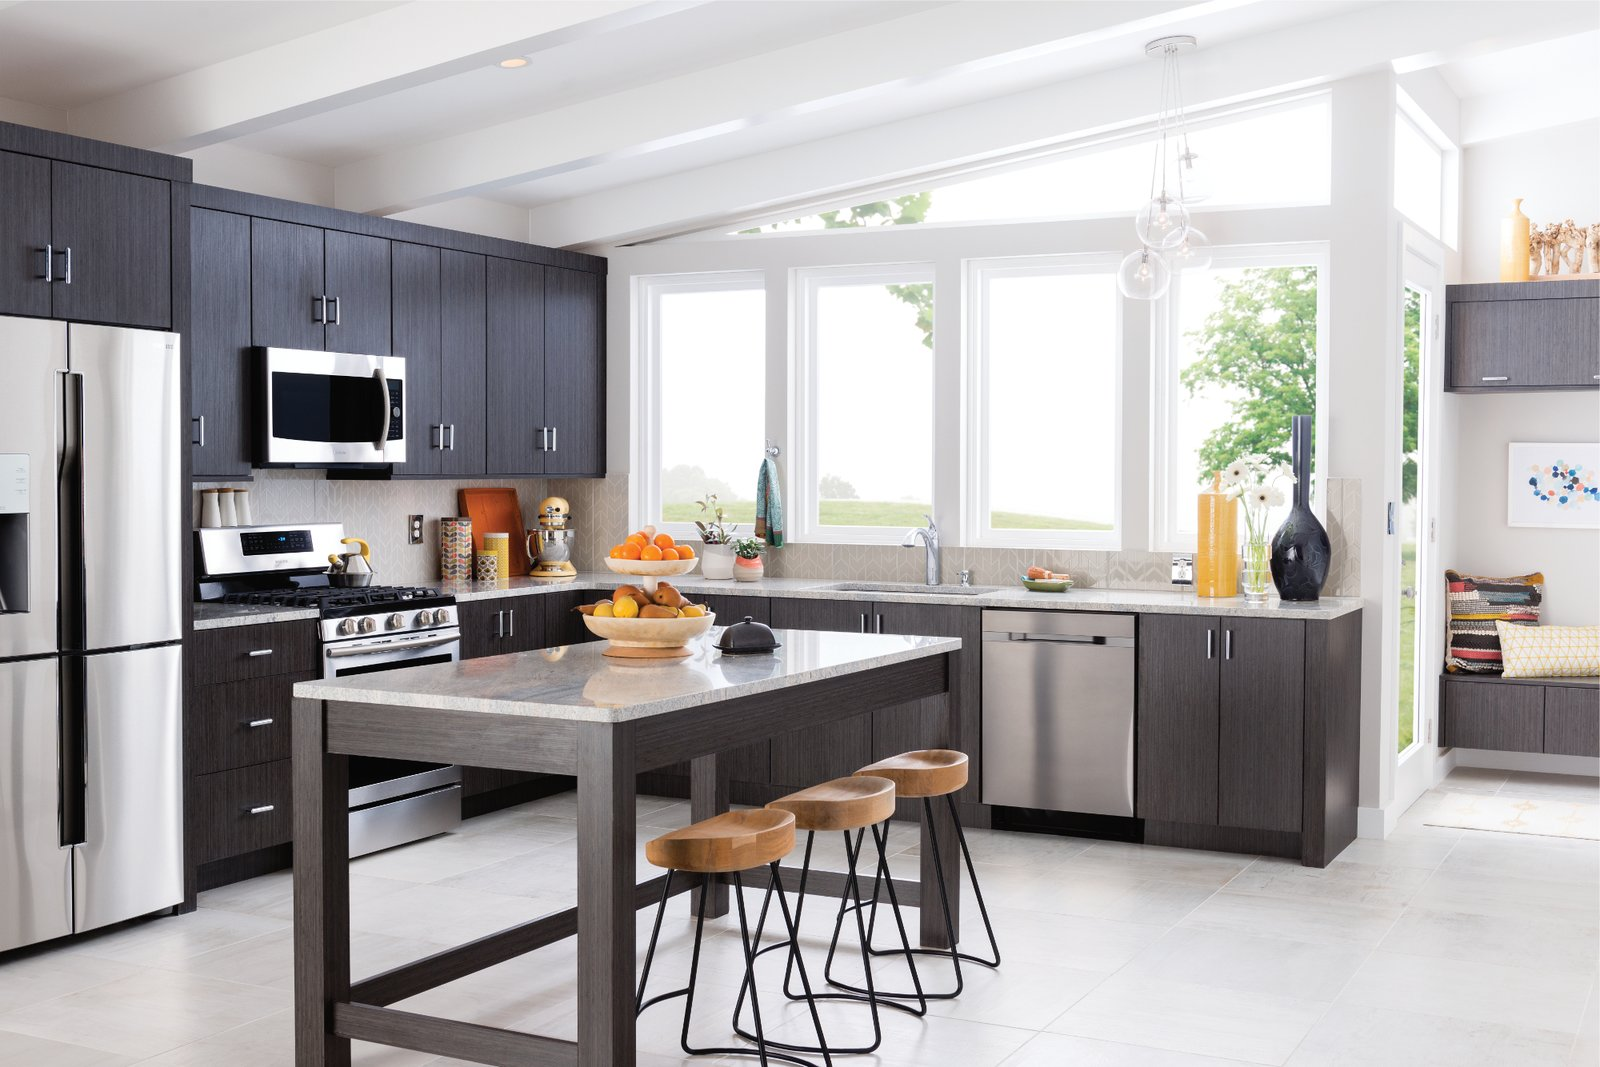 Photo 8 of 8 in How to Add a Modern Twist to Any Kitchen Style